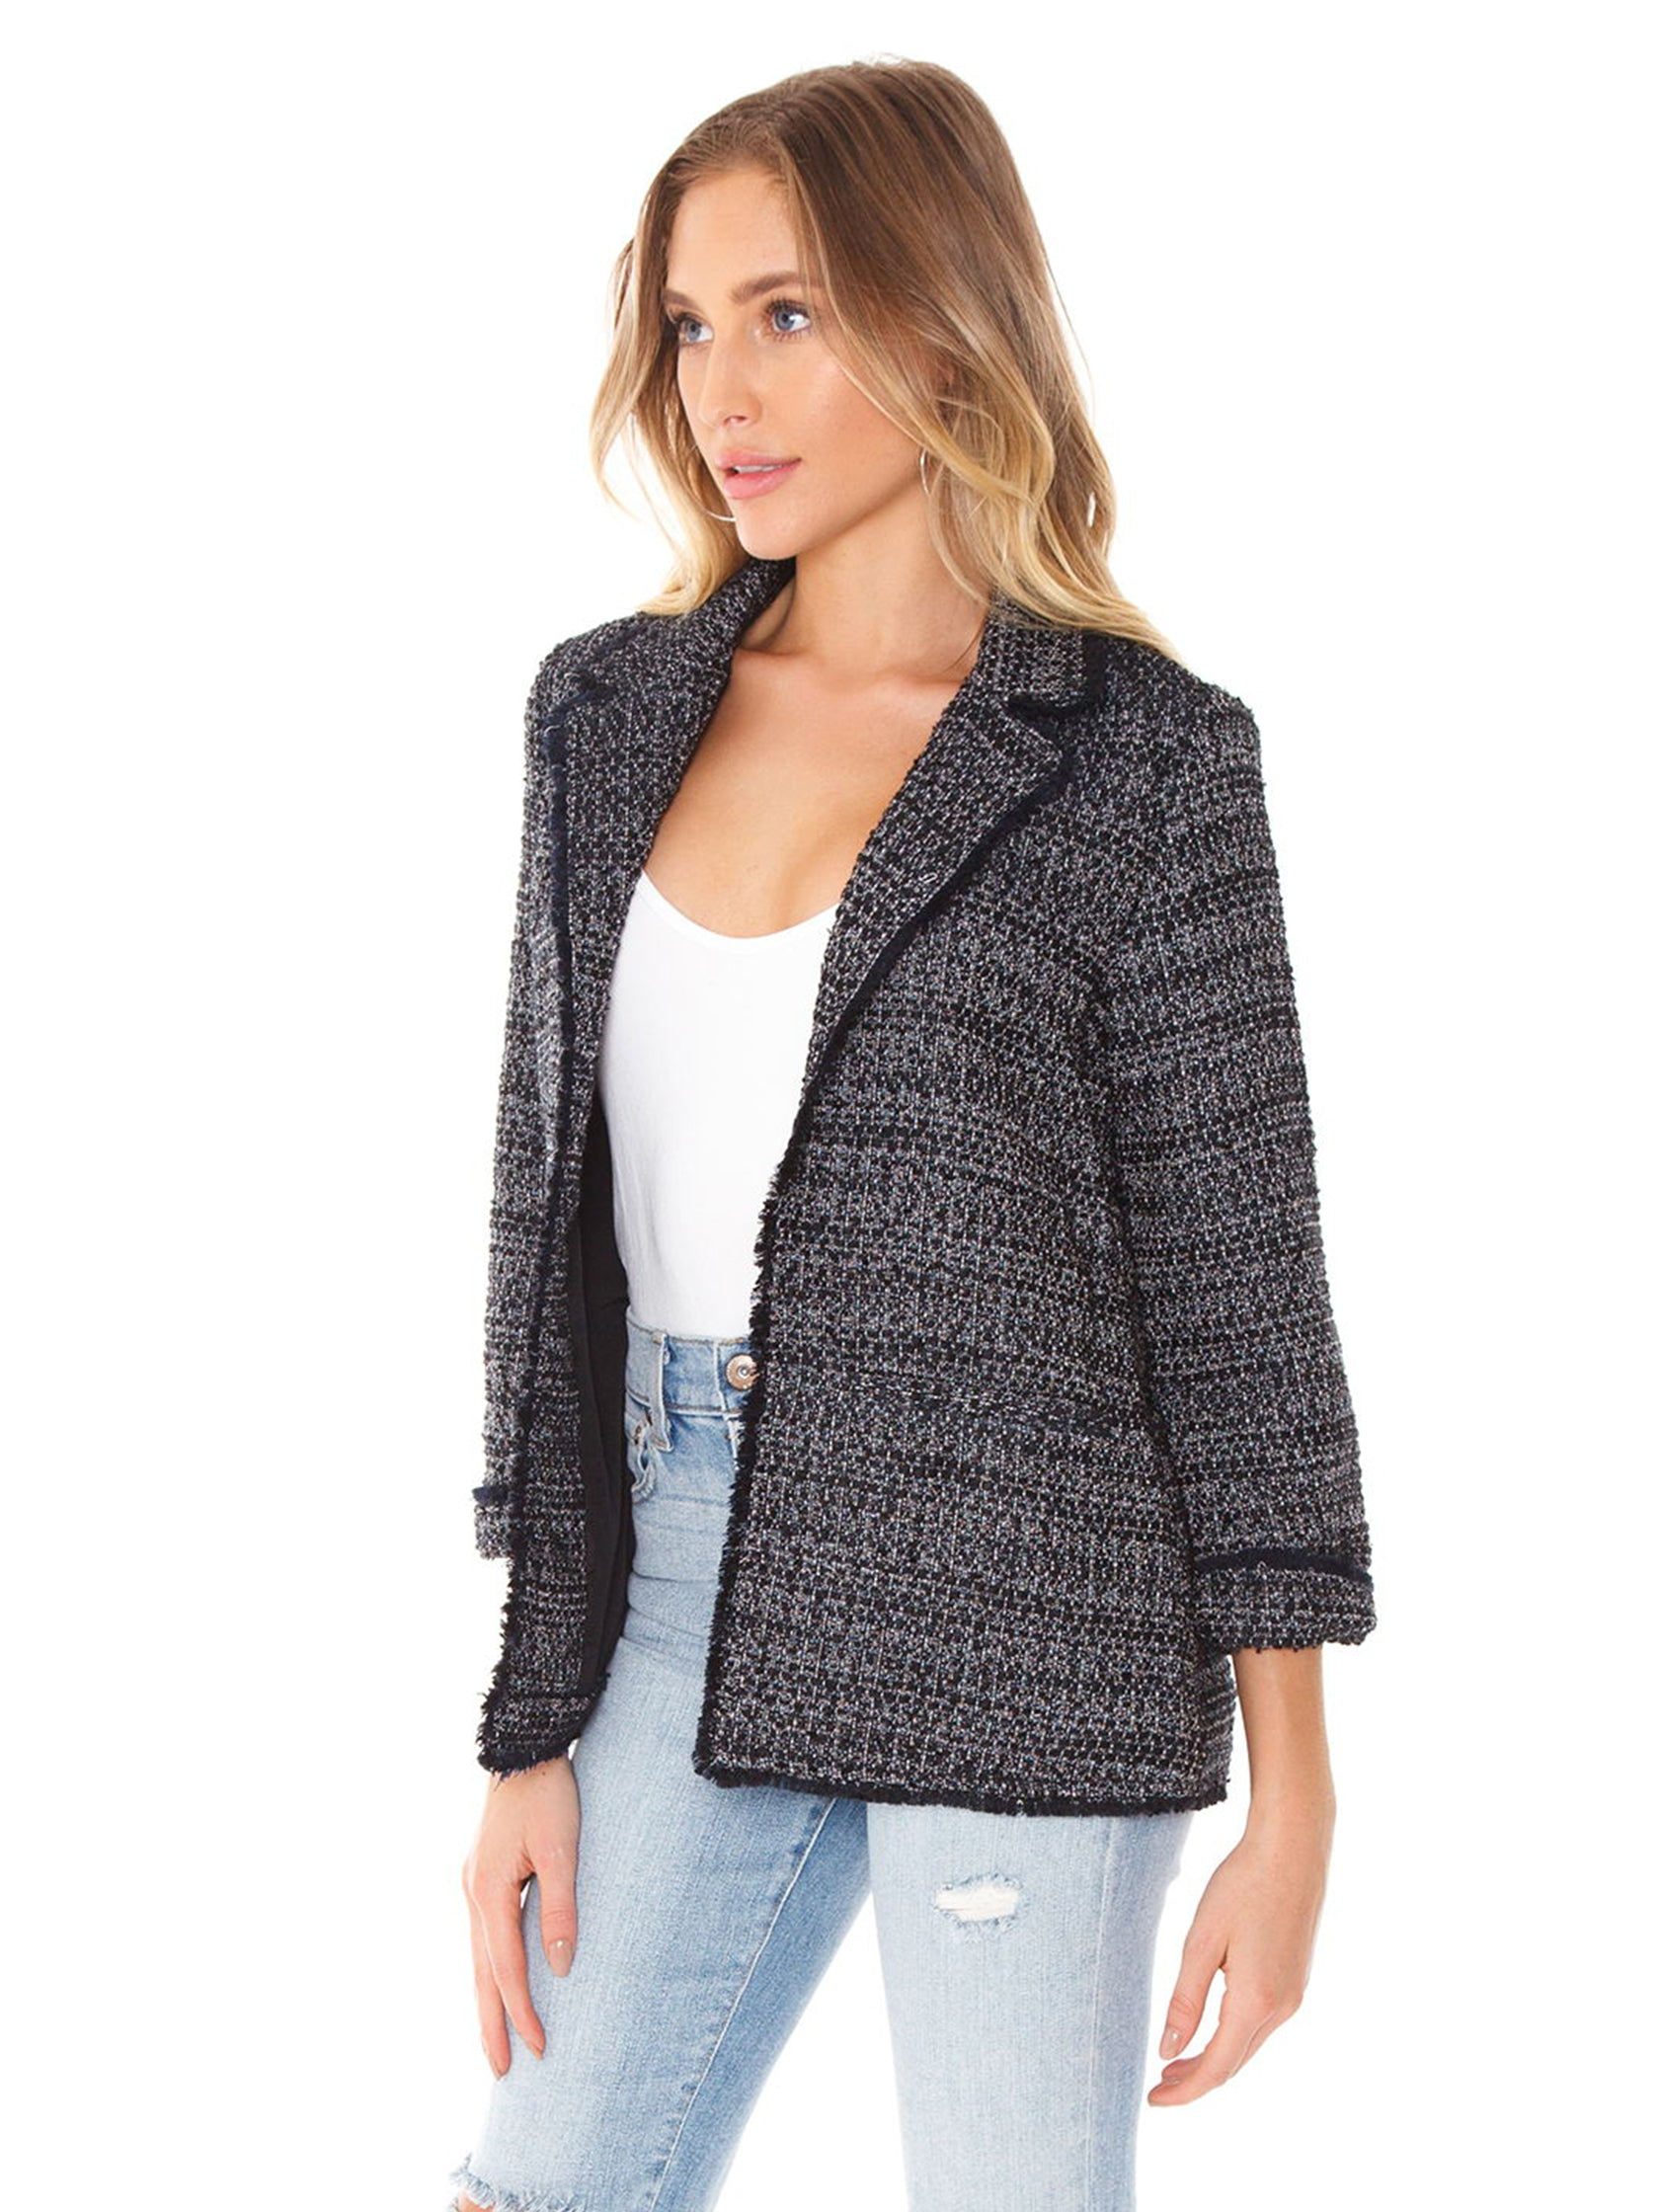 Women wearing a blazer rental from Cupcakes and Cashmere called Gregory Blazer